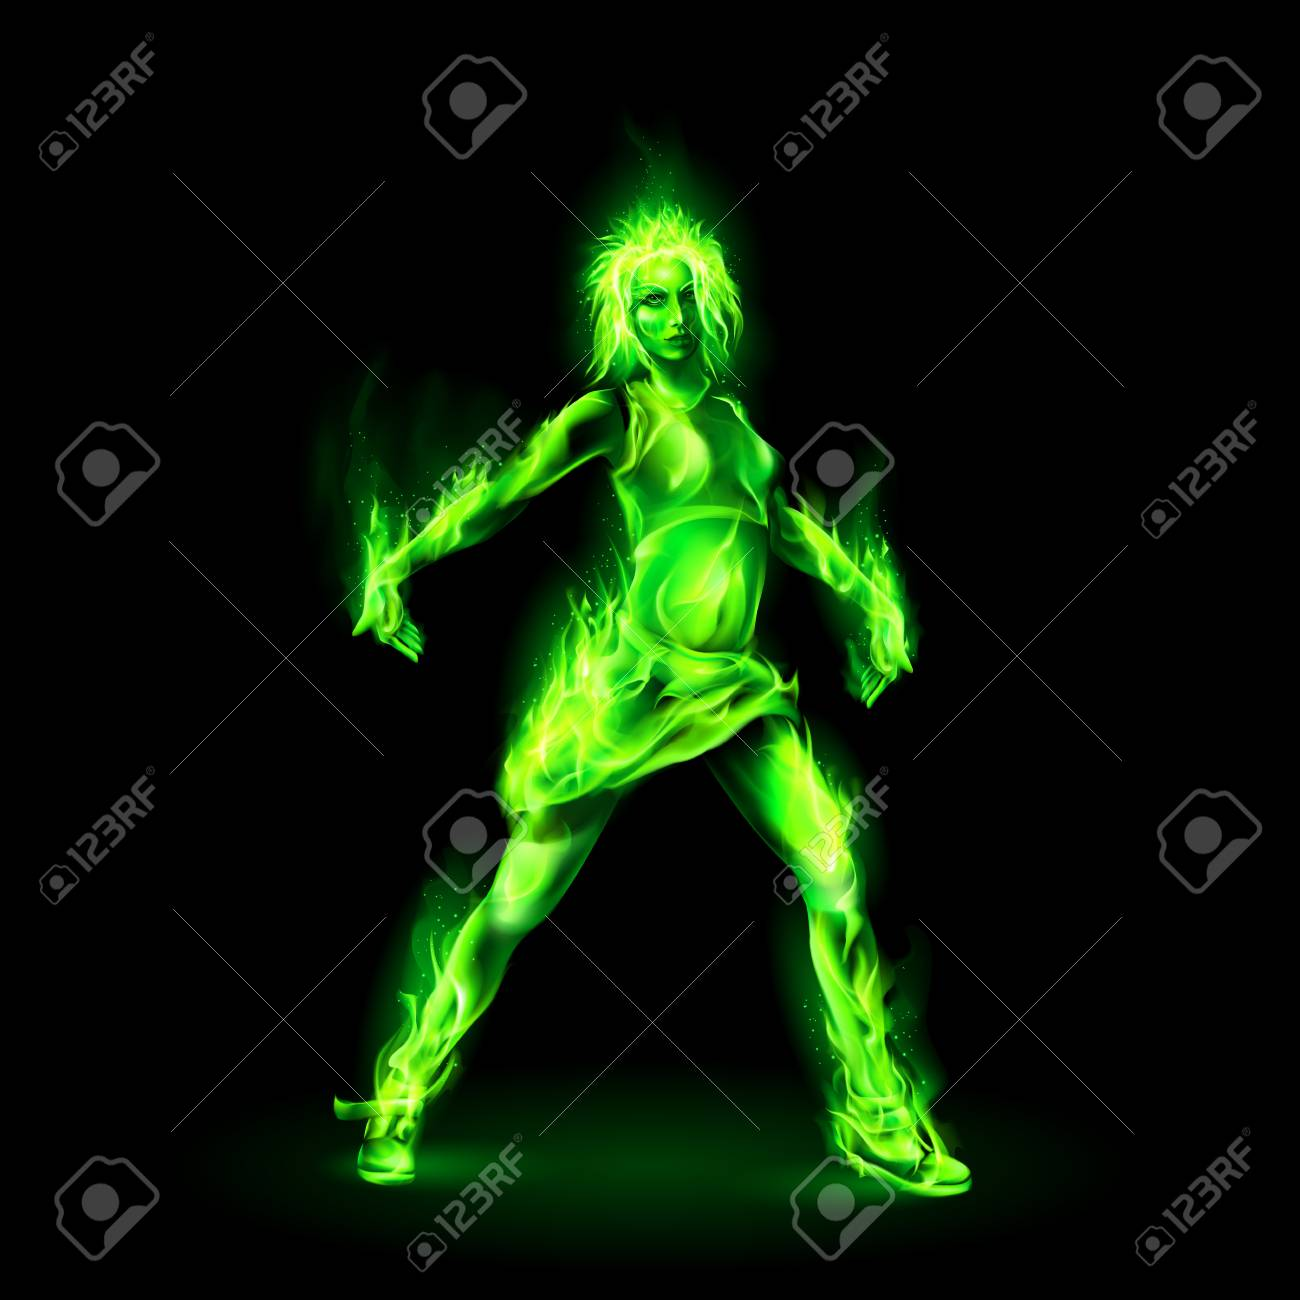 105292208-dancing-girl-made-of-green-fir